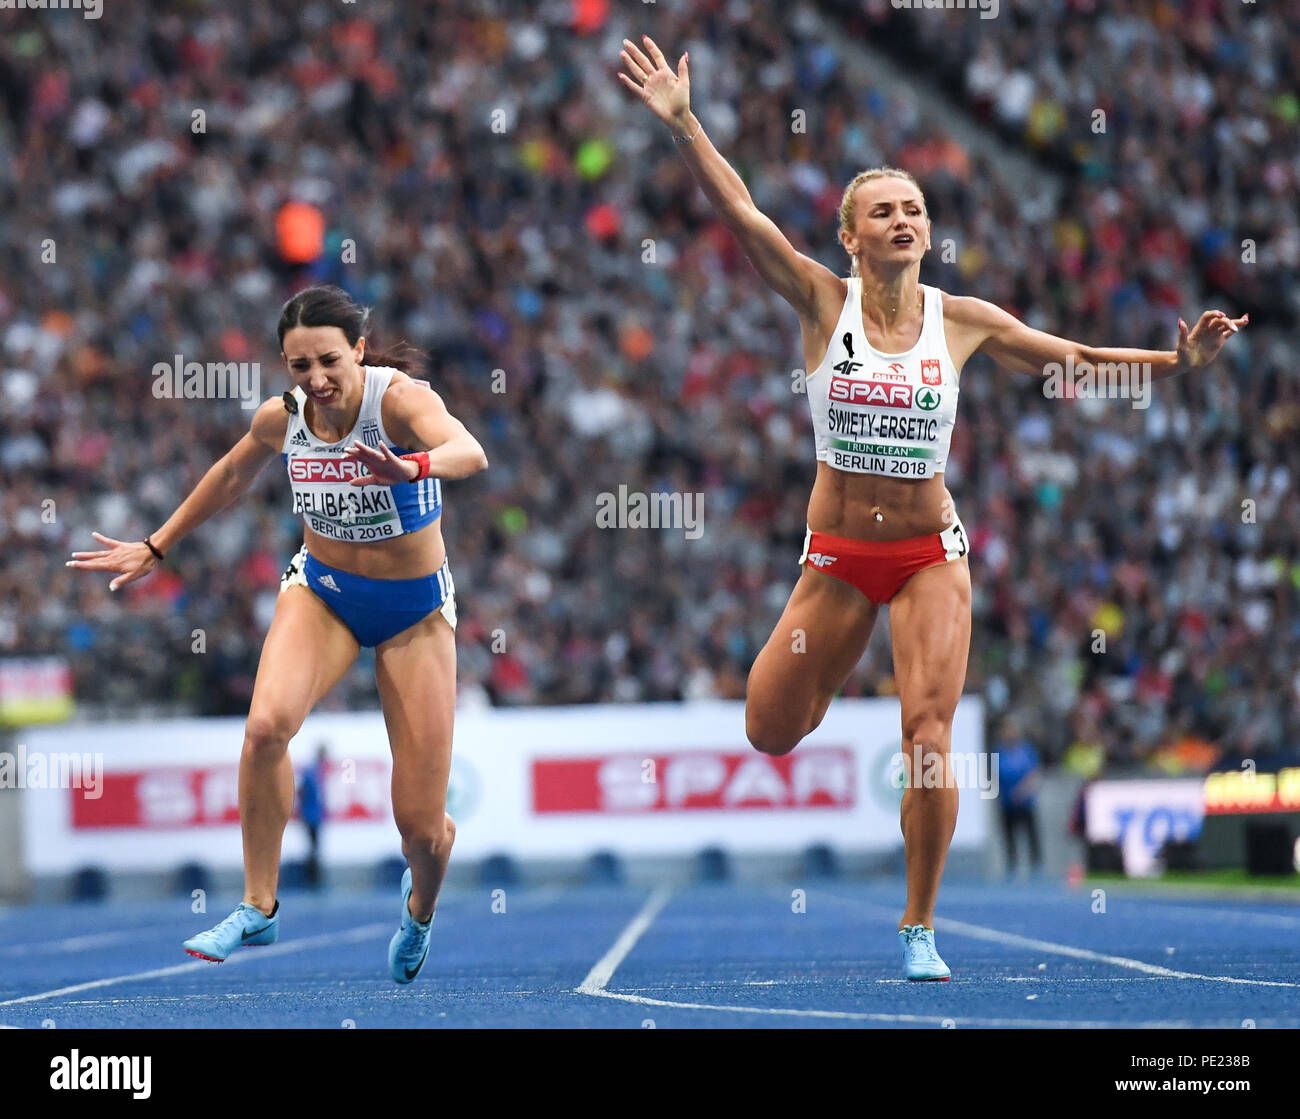 Berlin, Germany. 11th Aug, 2018. European Athletics Championships in the Olympic Stadium: 400 m finals, women: (L-R) Maria Belibasaki from Greece and Justyna Swiety-Ersetic from Poland in action. Credit: Sven Hoppe/dpa/Alamy Live News - Stock Image